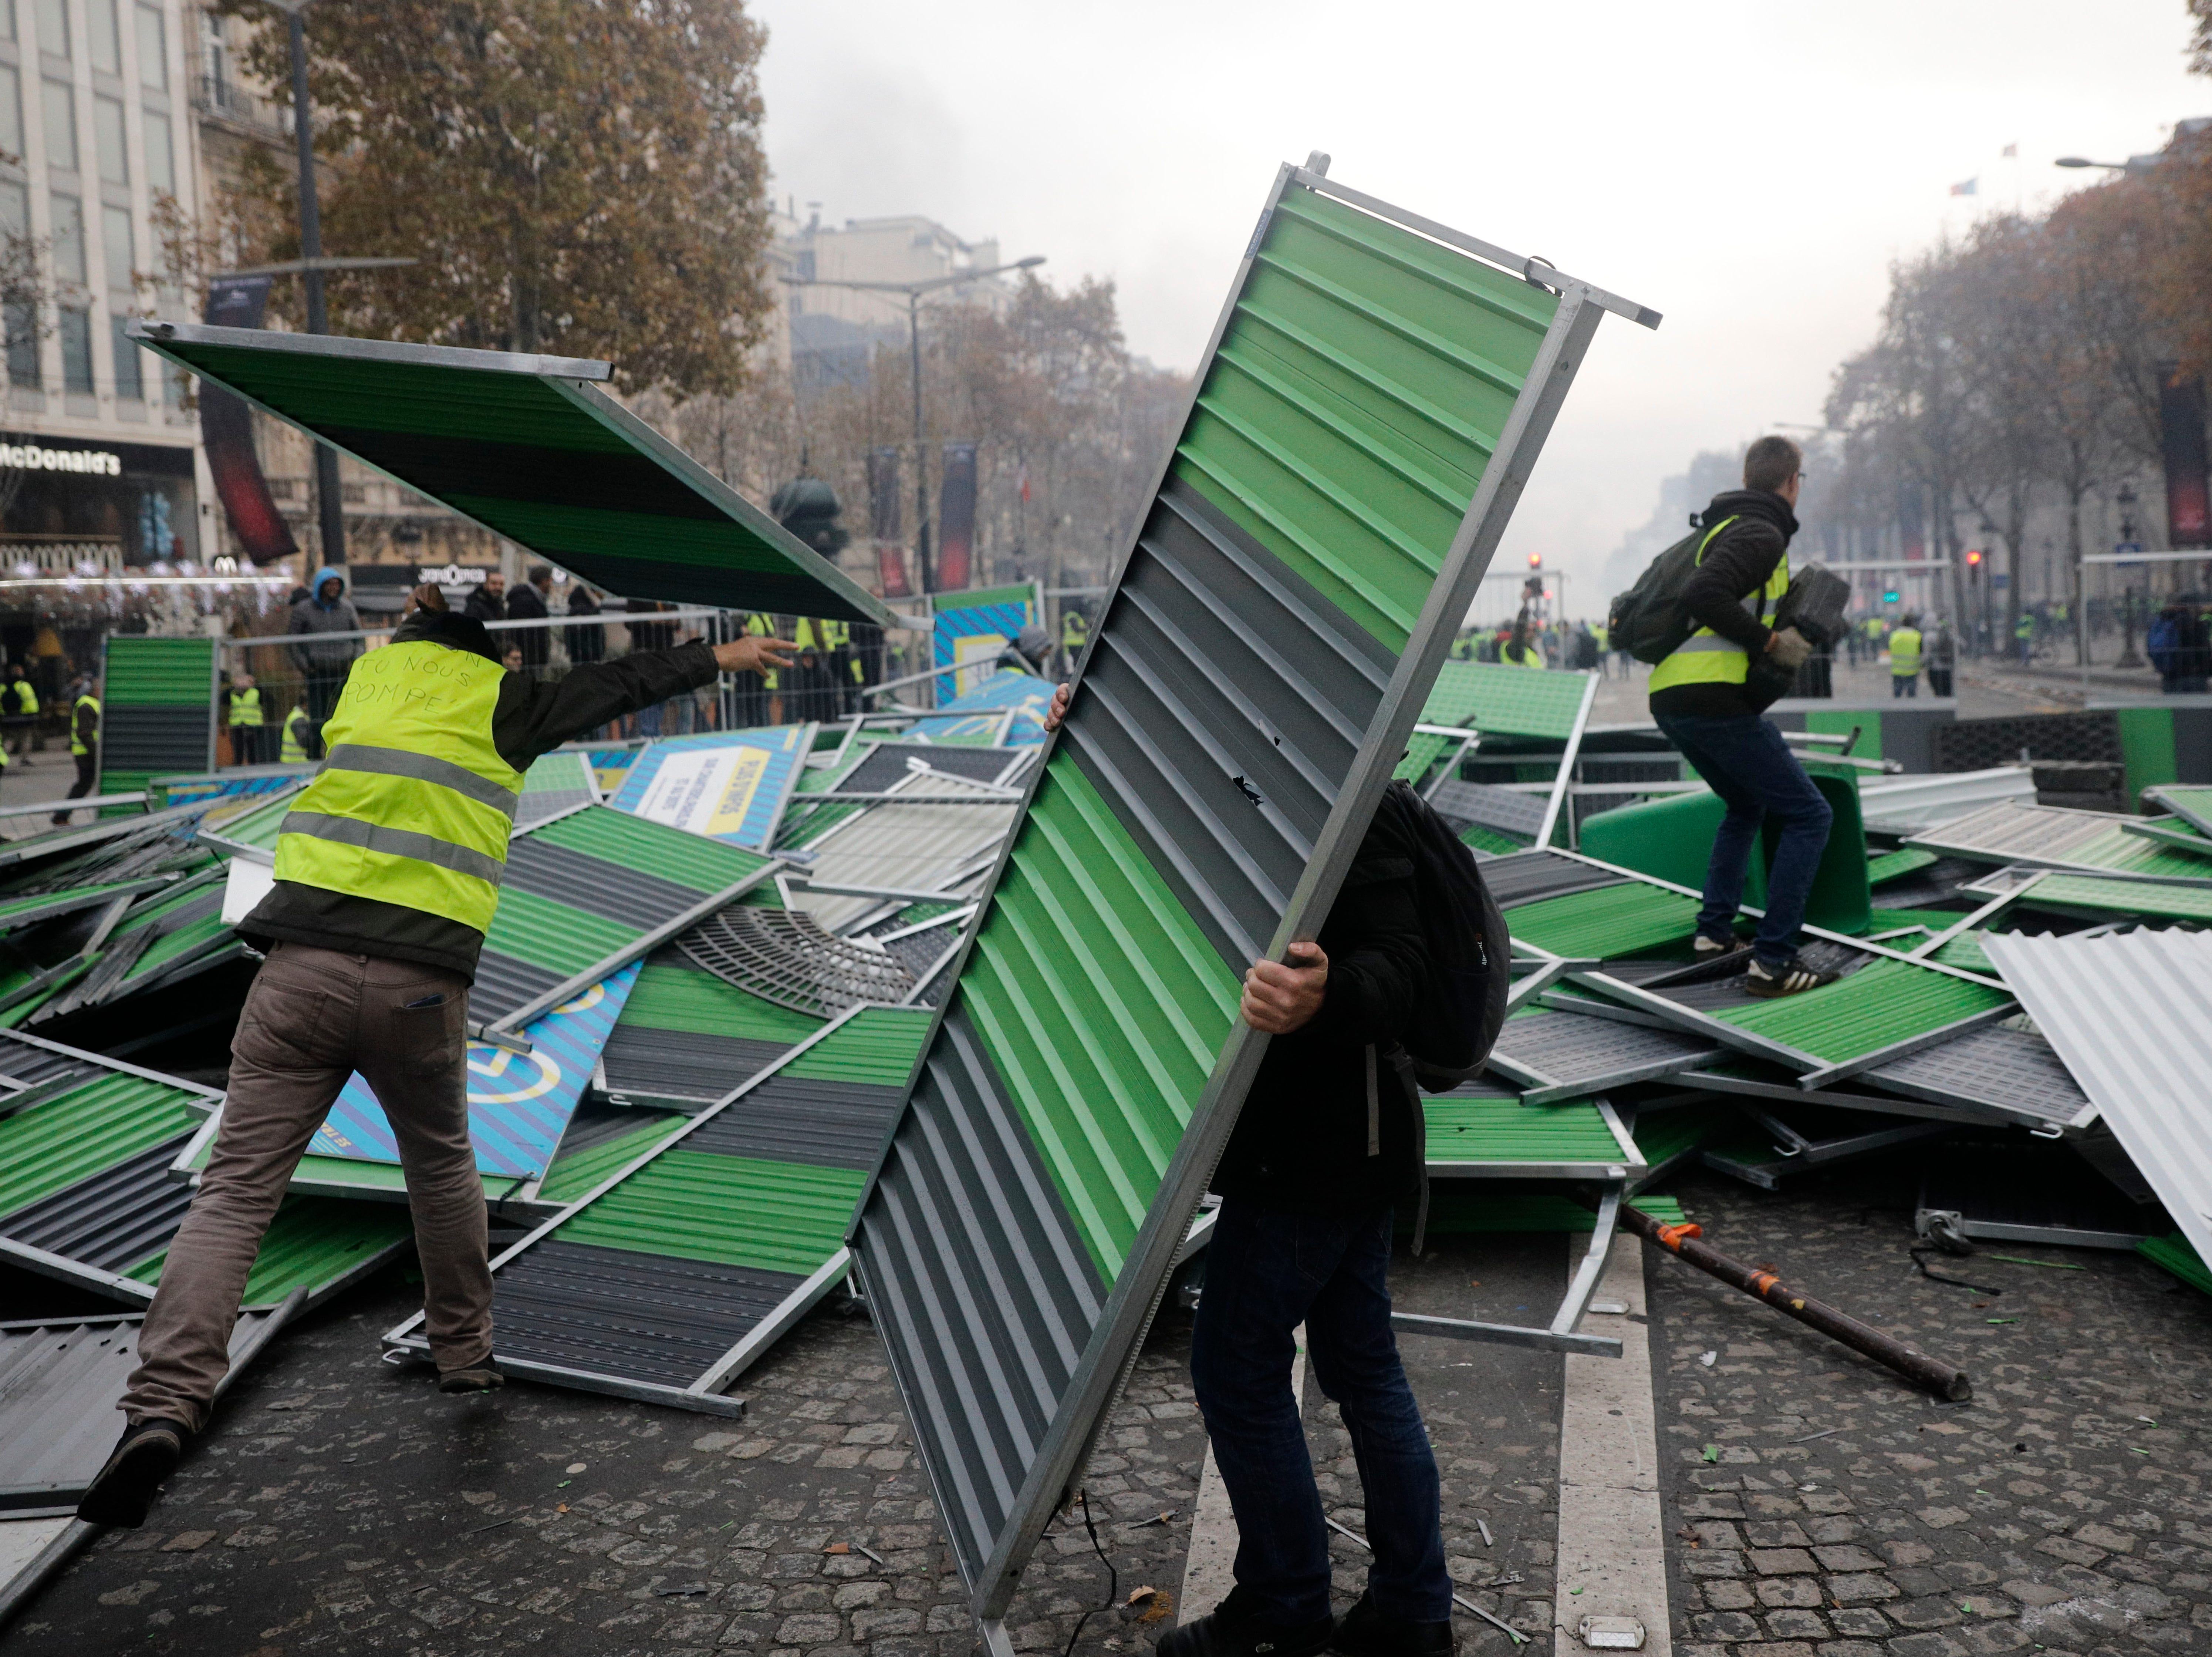 Demonstrators, called the yellow jackets, set up a makeshift barricade on the famed Champs-Elysees avenue as they protest against the rising of the fuel taxes, in Paris, France, Saturday, Nov. 24, 2018.